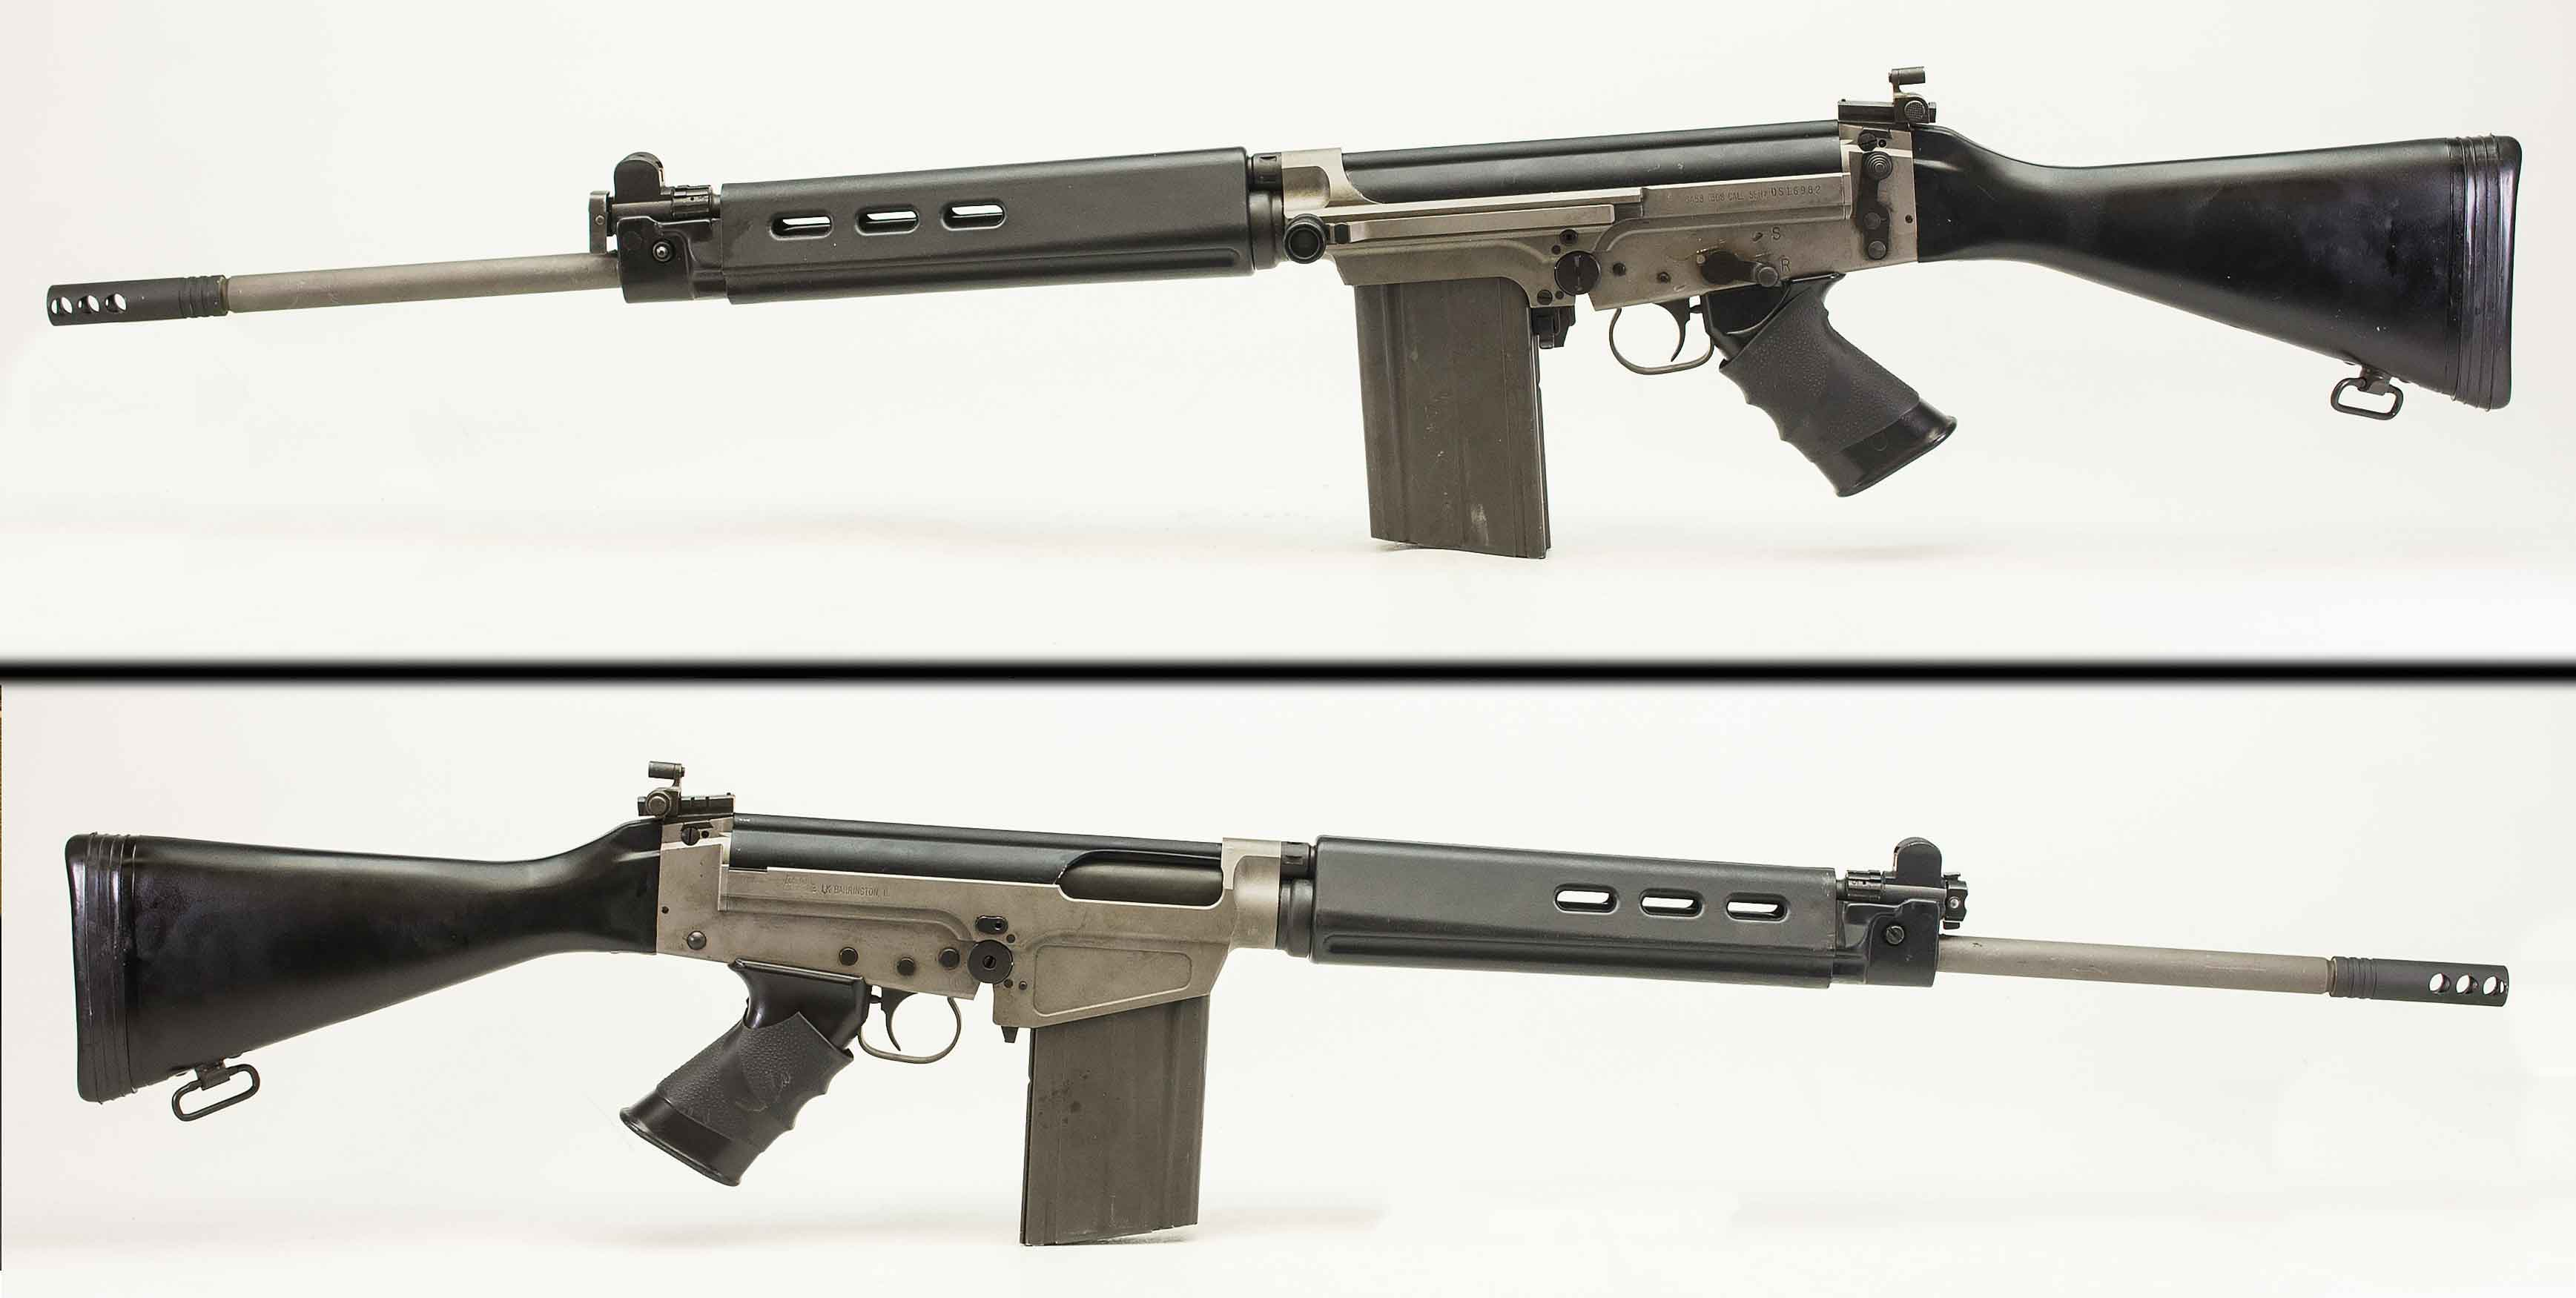 Dsa Fn Fal Sa58 Auction Id 11793247 End Time Jul 01 2018 22